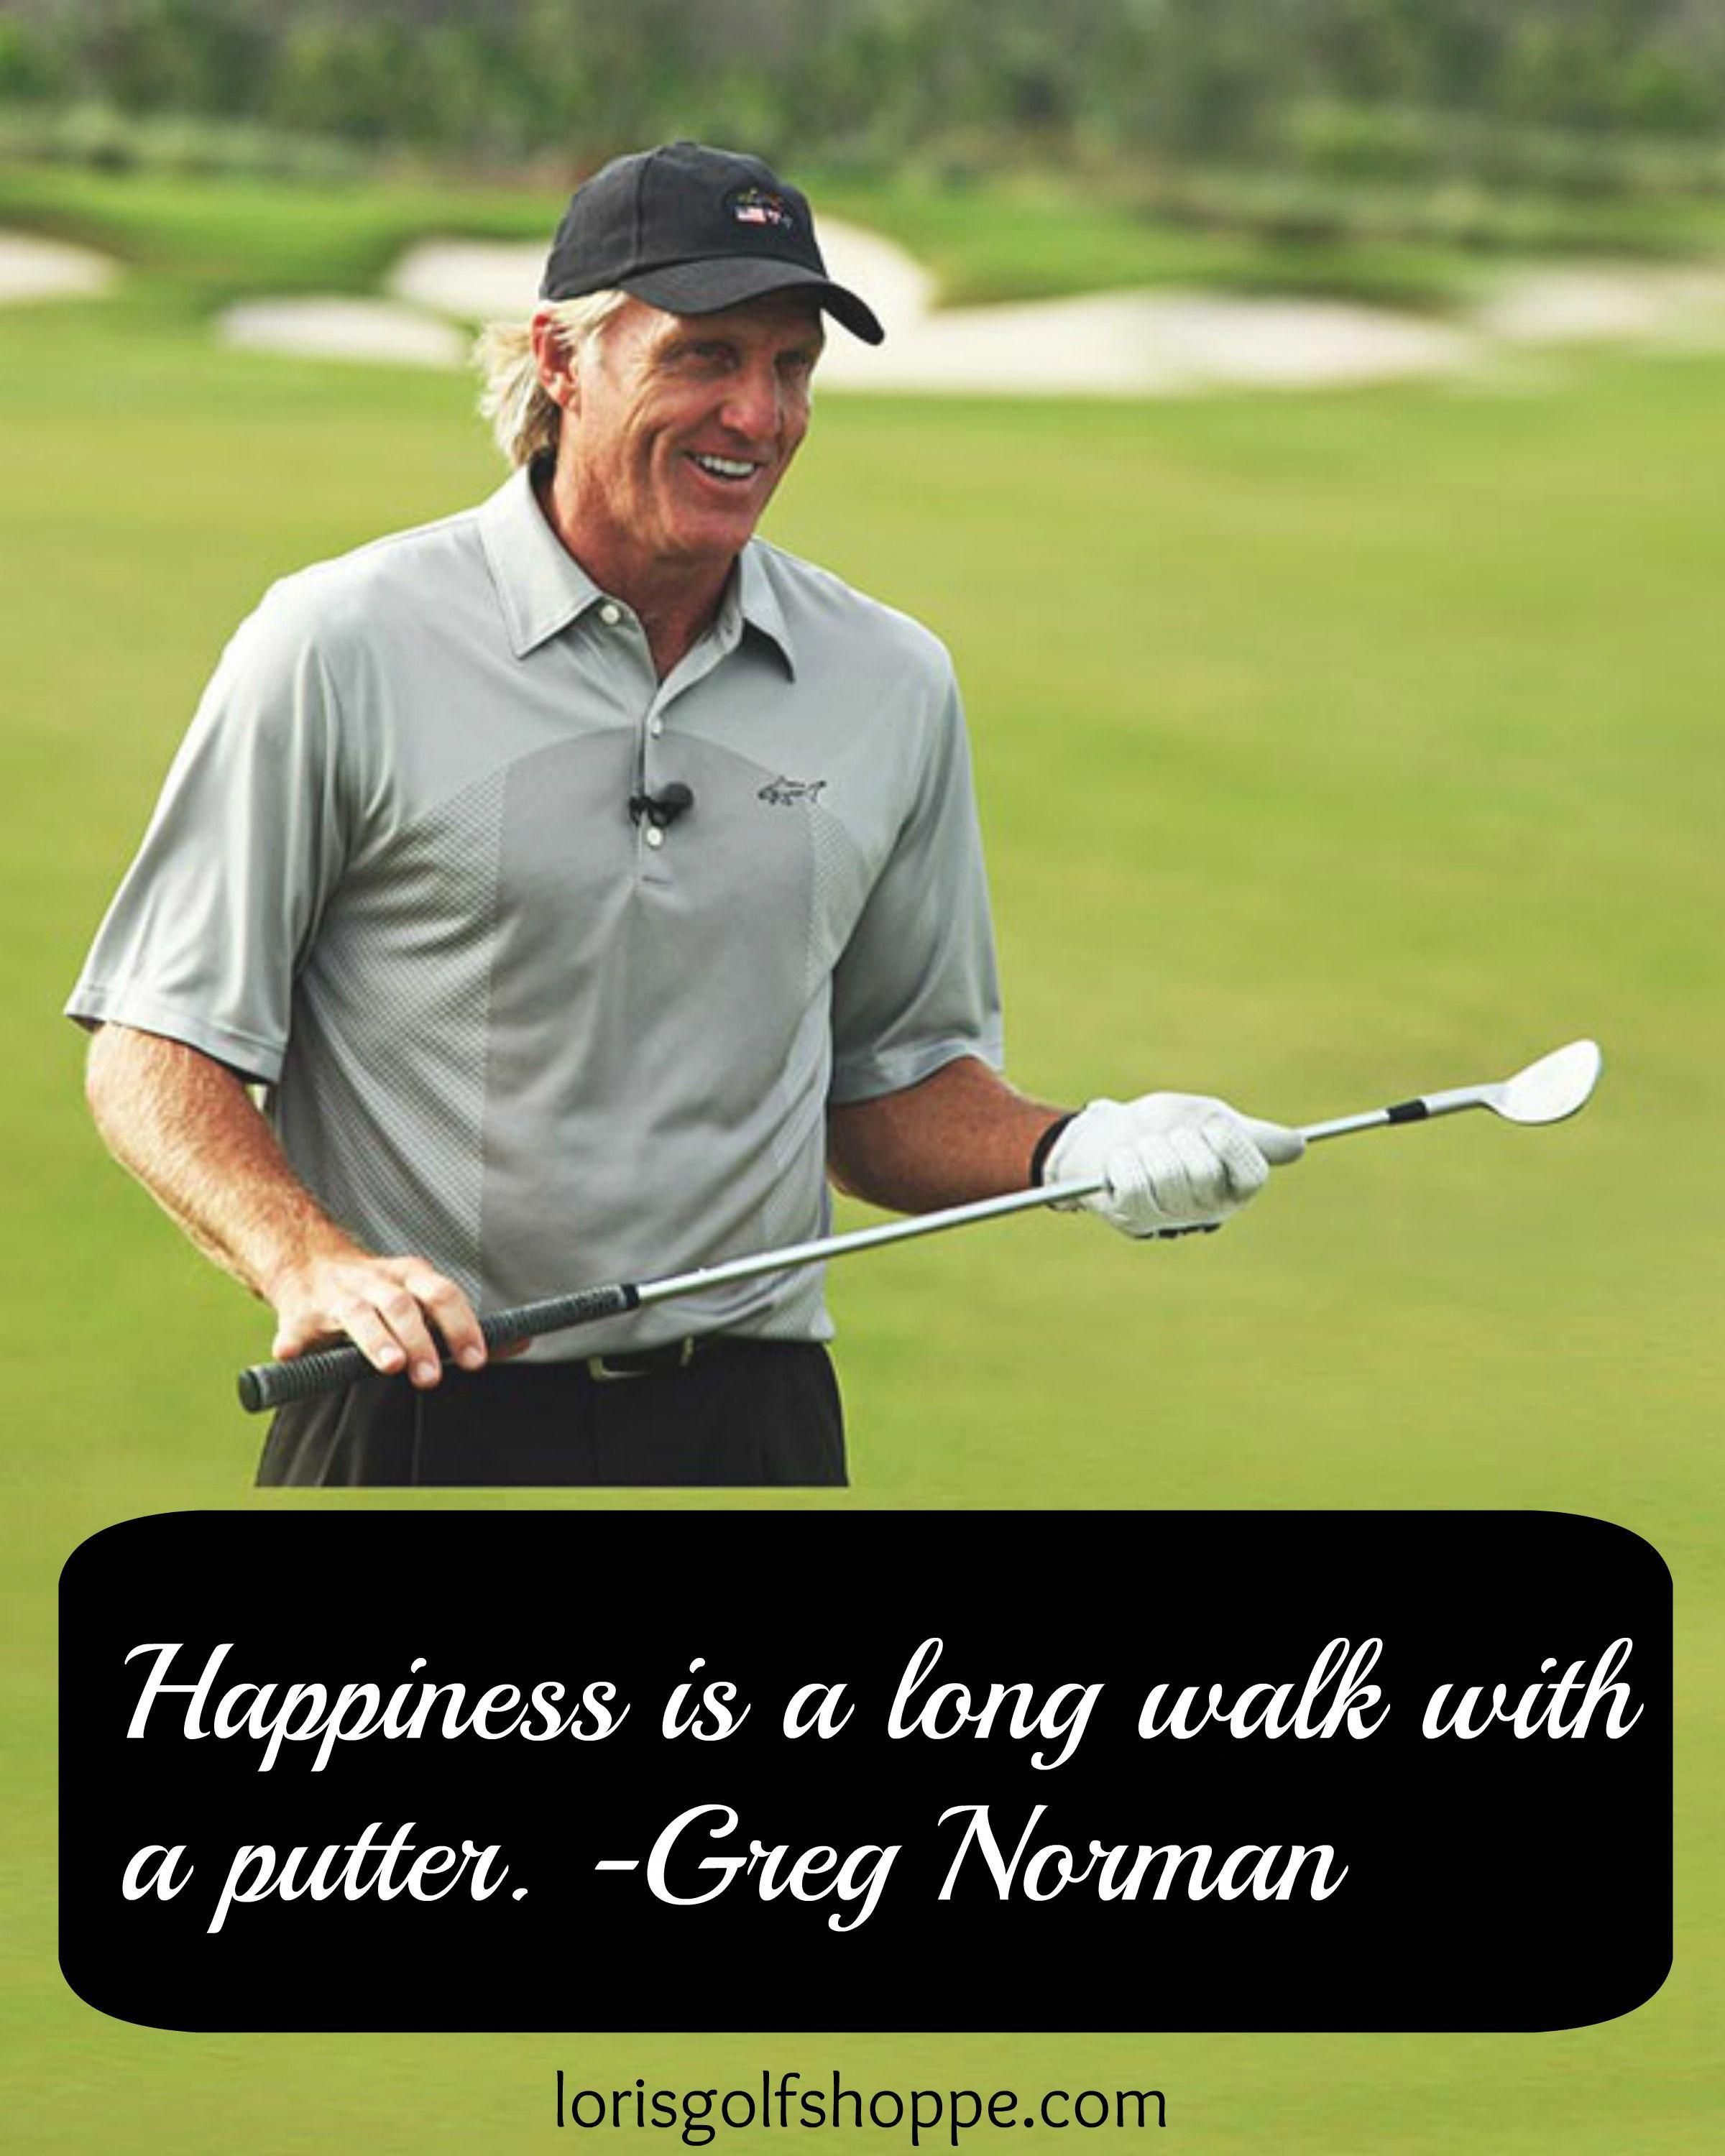 Couldn T Agree More With Greg Norman Golf Thought Quote Lorisgolfshoppe Golfquotes Golf Quotes Golf Inspiration Golf Humor